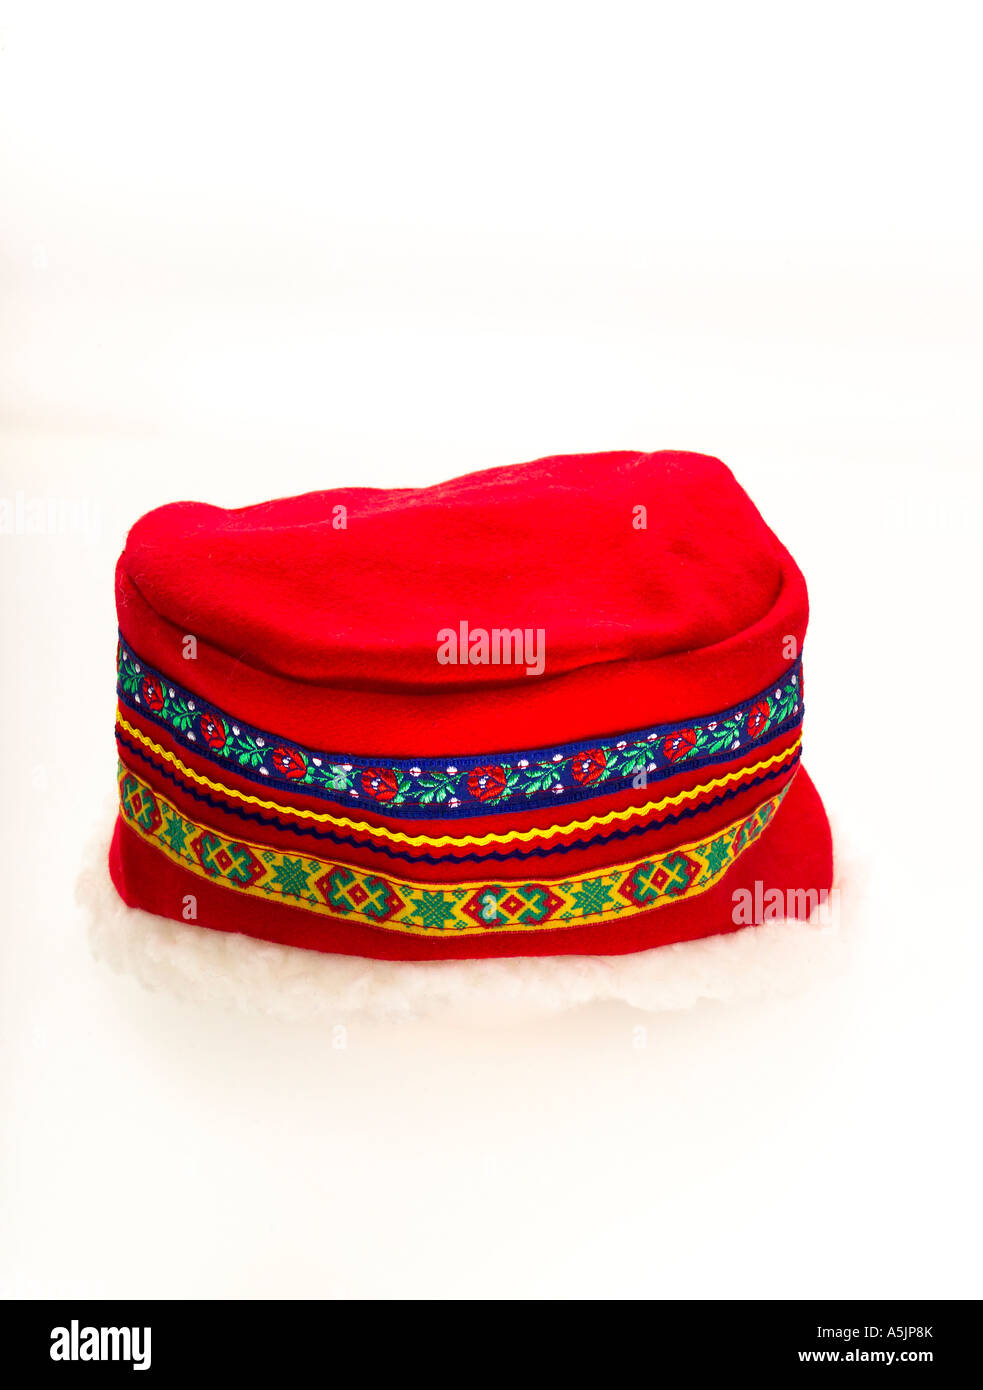 Traditional Sami hat from Northern Sweden Stock Photo  11328450 - Alamy d4b3193b44e